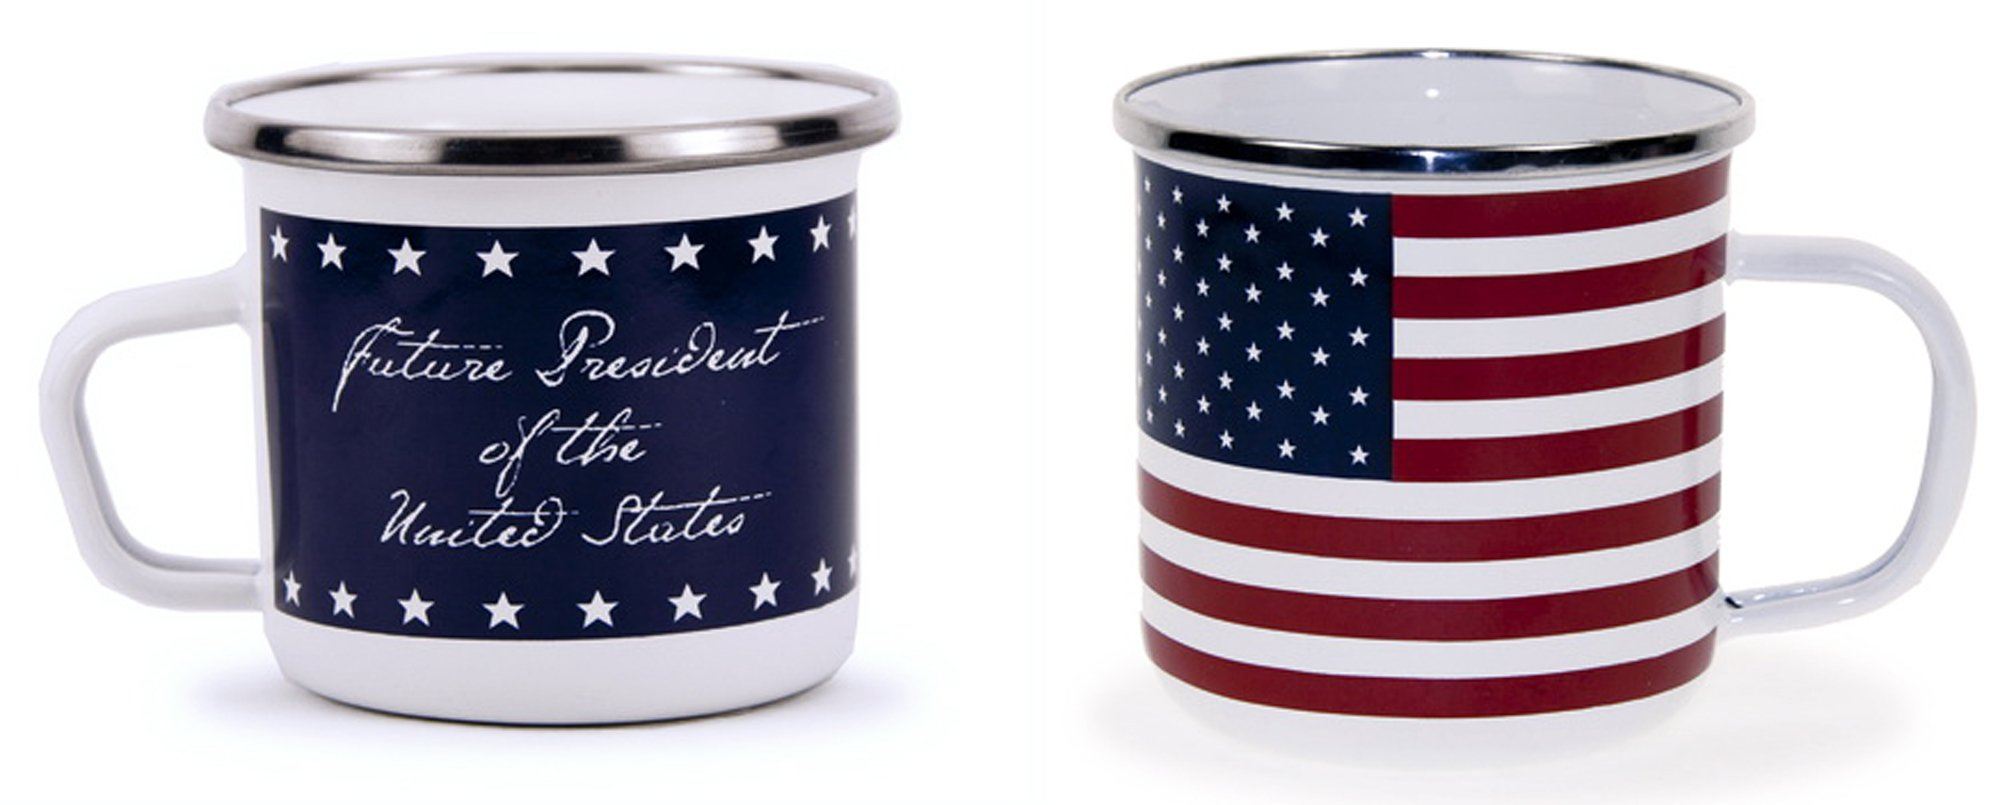 SSP20 - Stars and Strips Pattern - President 4 Ounce Child Mug